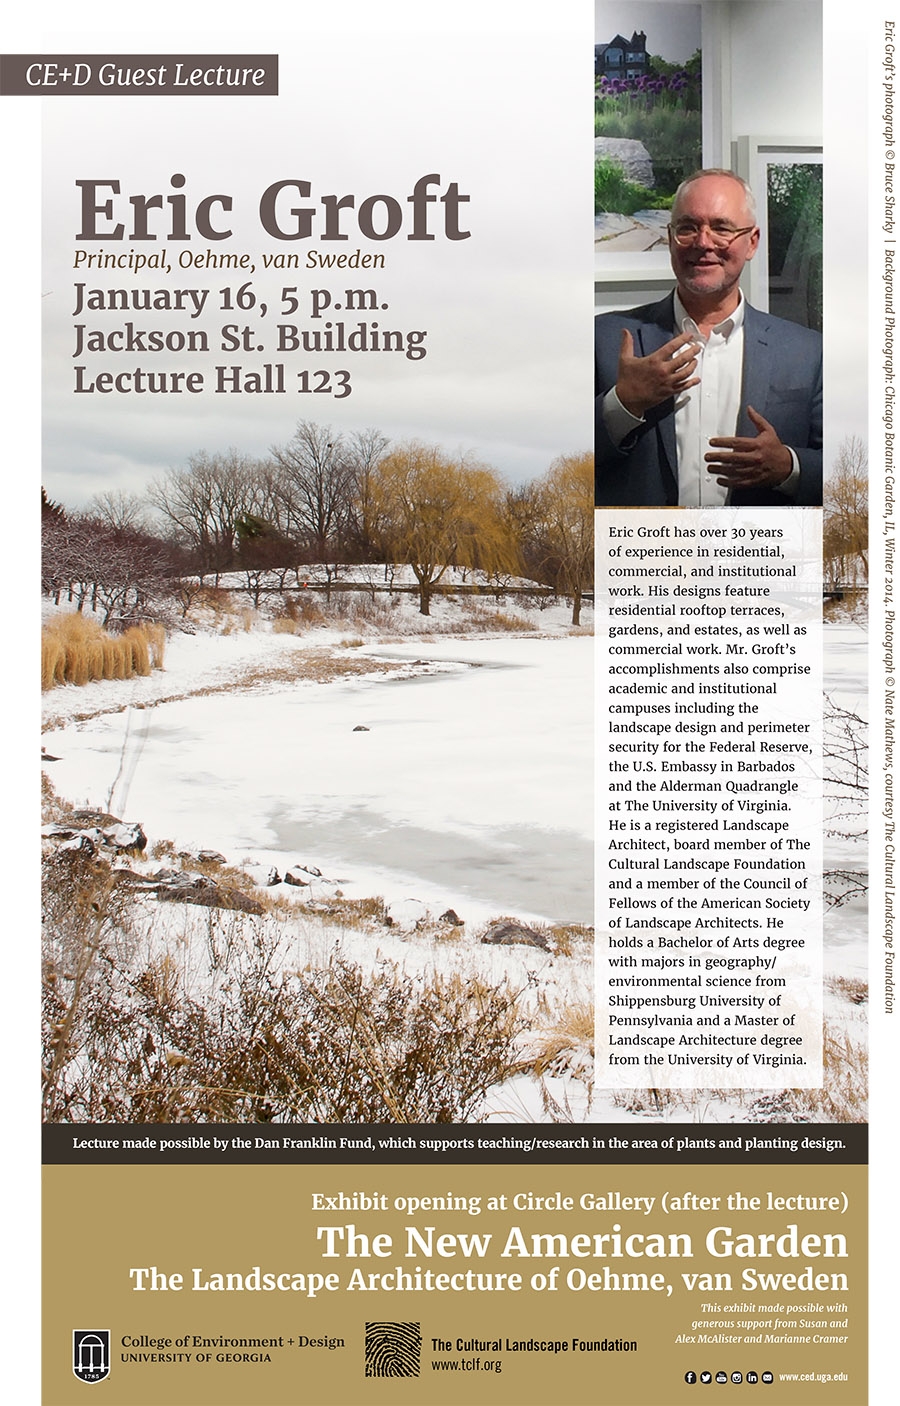 Eric Groft of Oehme, van Sweden to lecture Jan. 16th